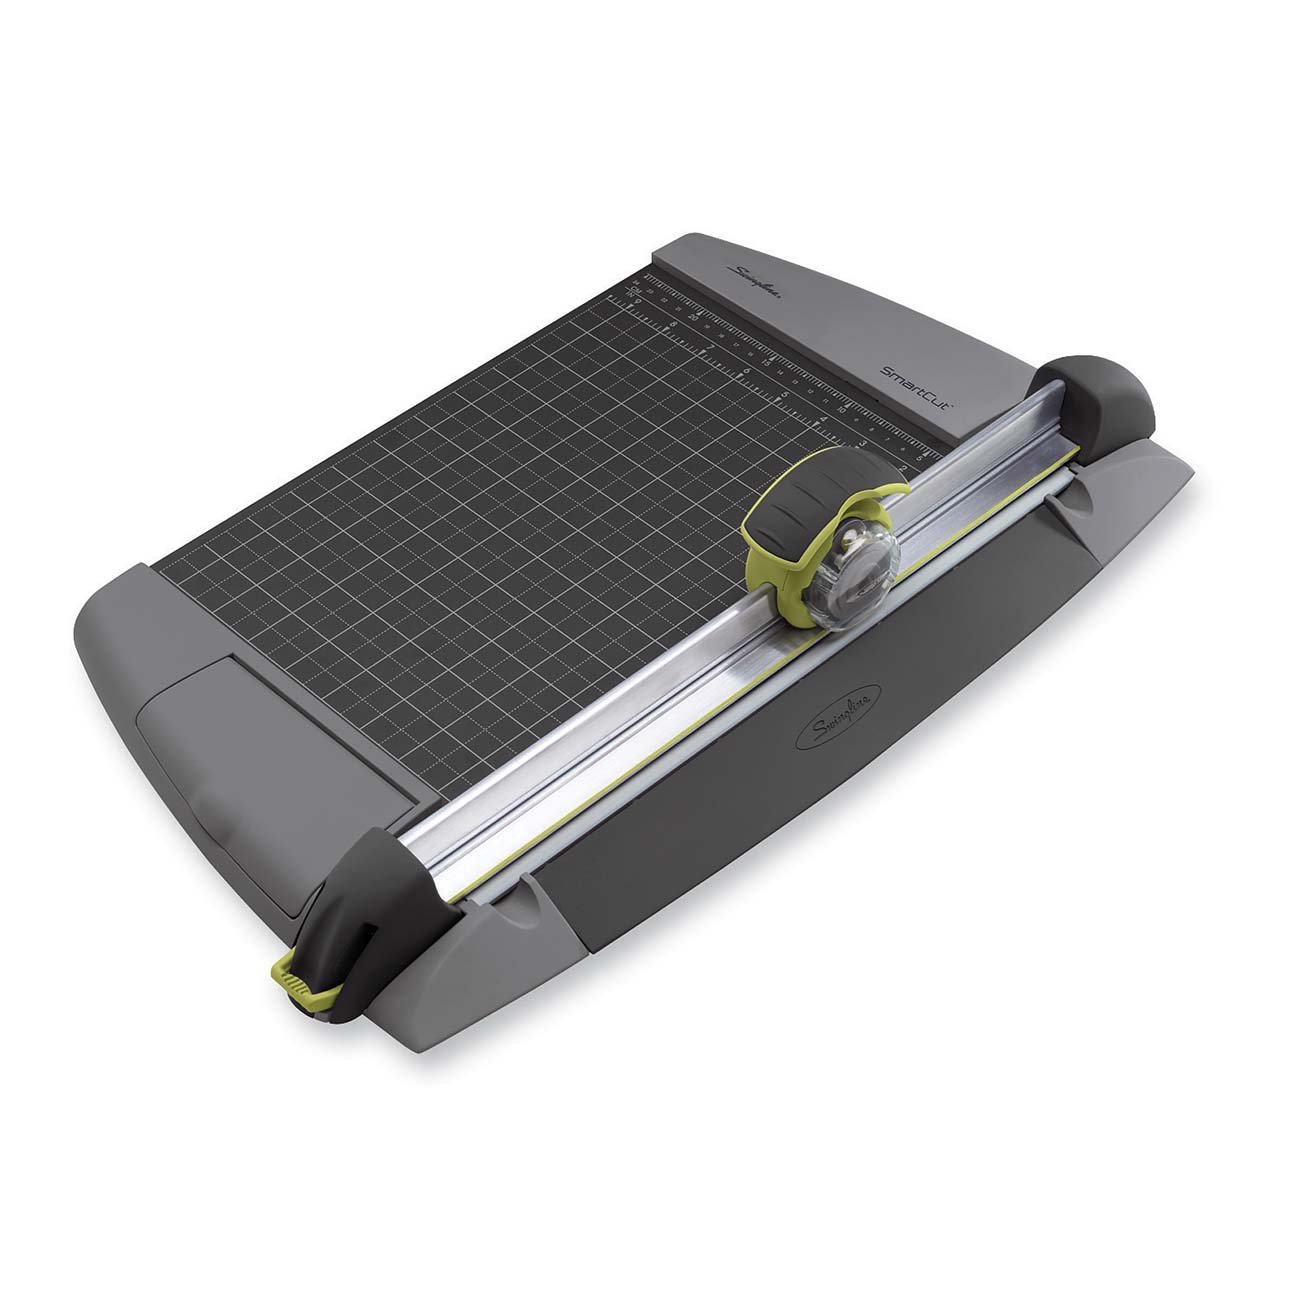 Swingline SmartCut EasyBlade Plus Rotary Paper Trimmer, 12-Inch, 15 Sheet Capacity, Gray and Green (8912) ACCO Brands Canada Inc.